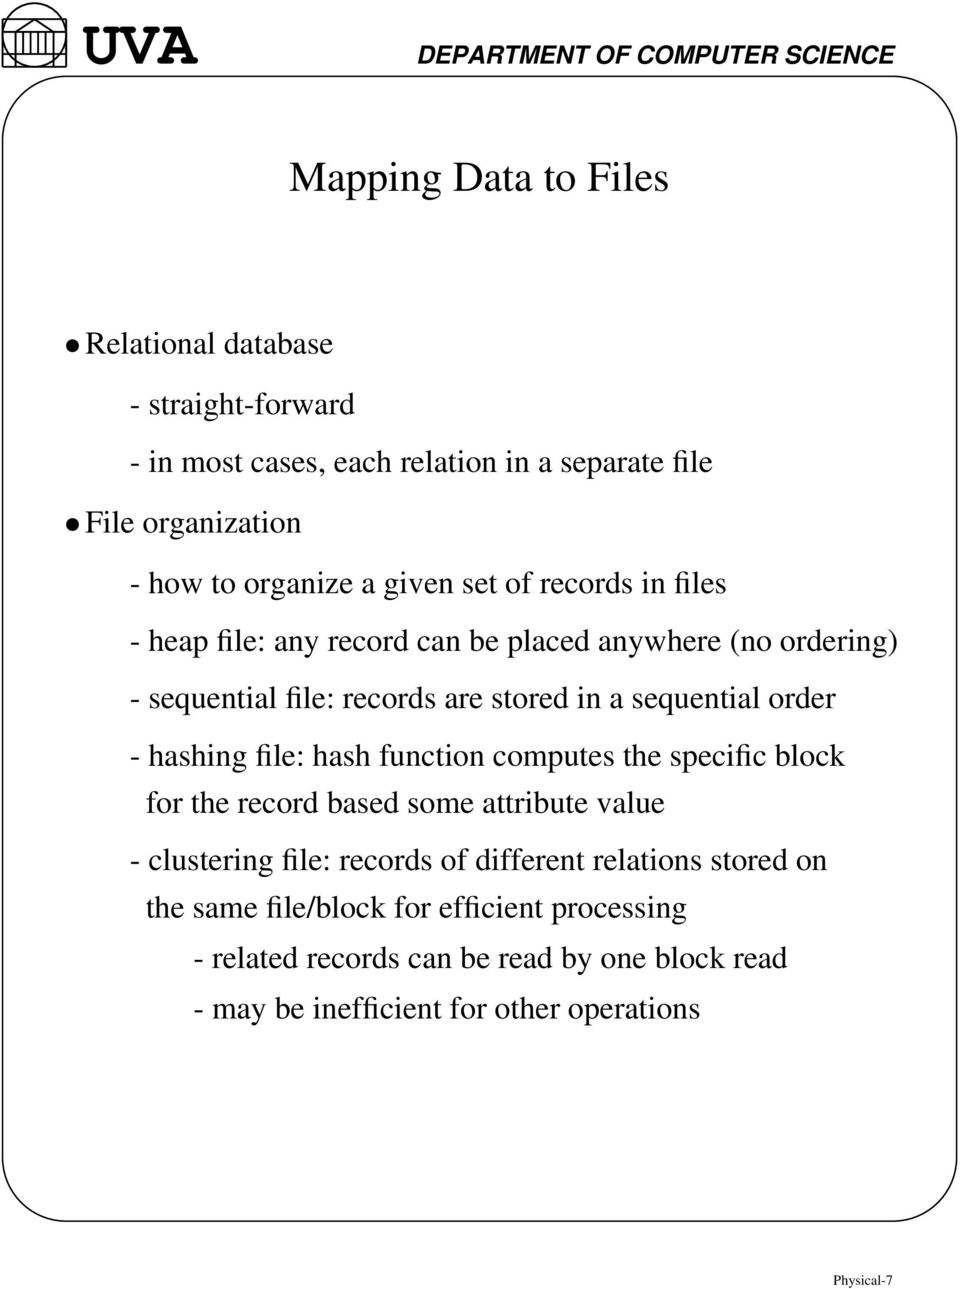 - hashing file: hash function computes the specific block for the record based some attribute value - clustering file: records of different relations